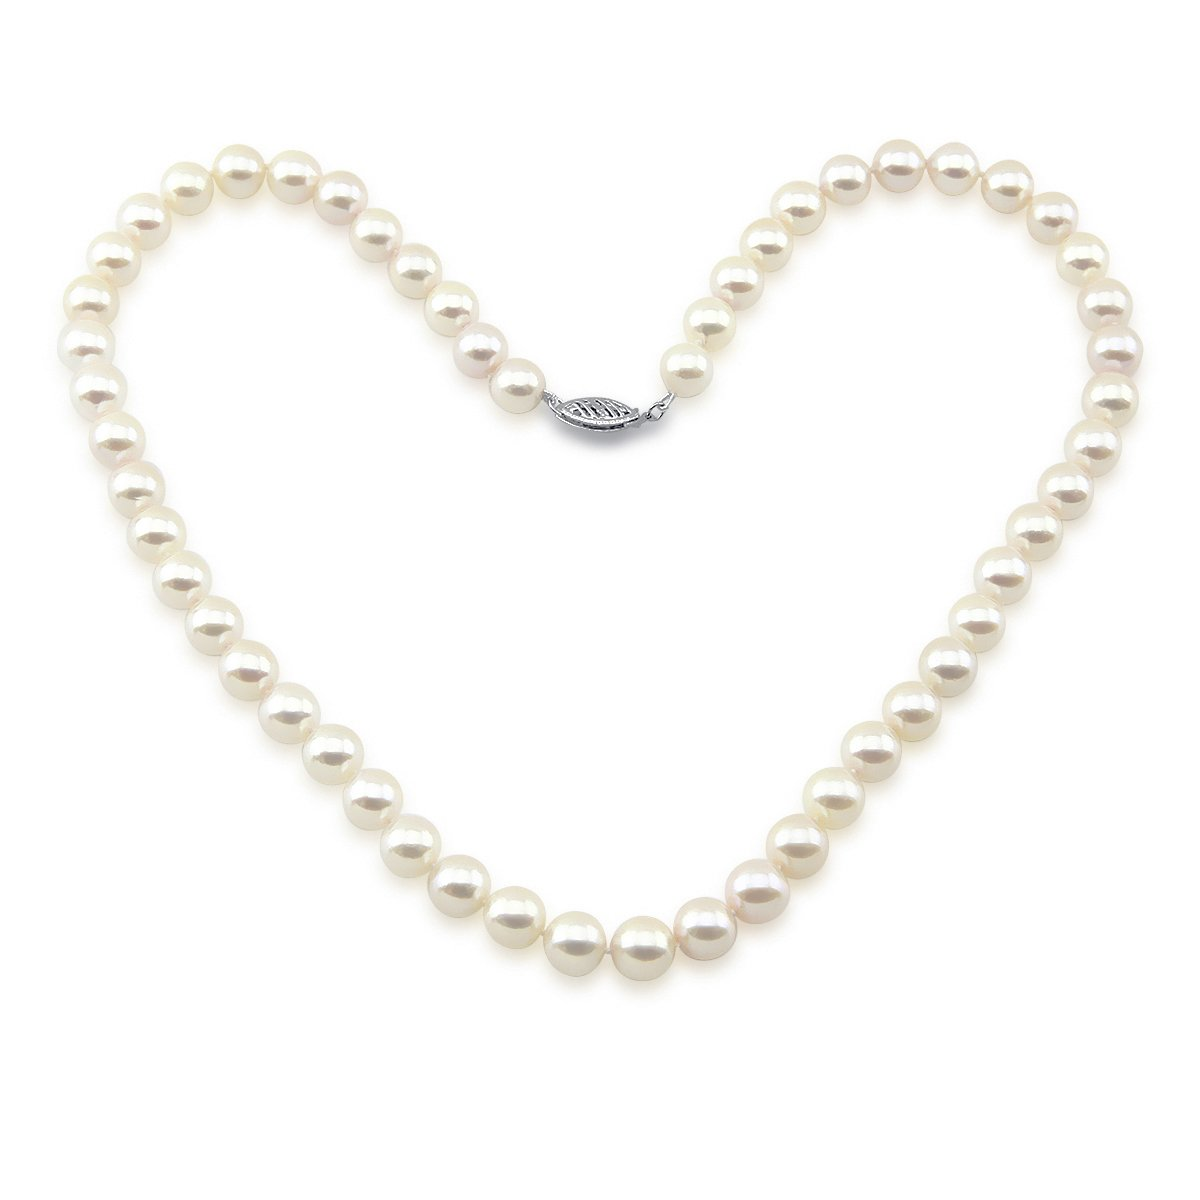 14K White Gold 7.0-7.5mm White Akoya Cultured Pearl High Luster Necklace 18'' Length, AA+ Quality.